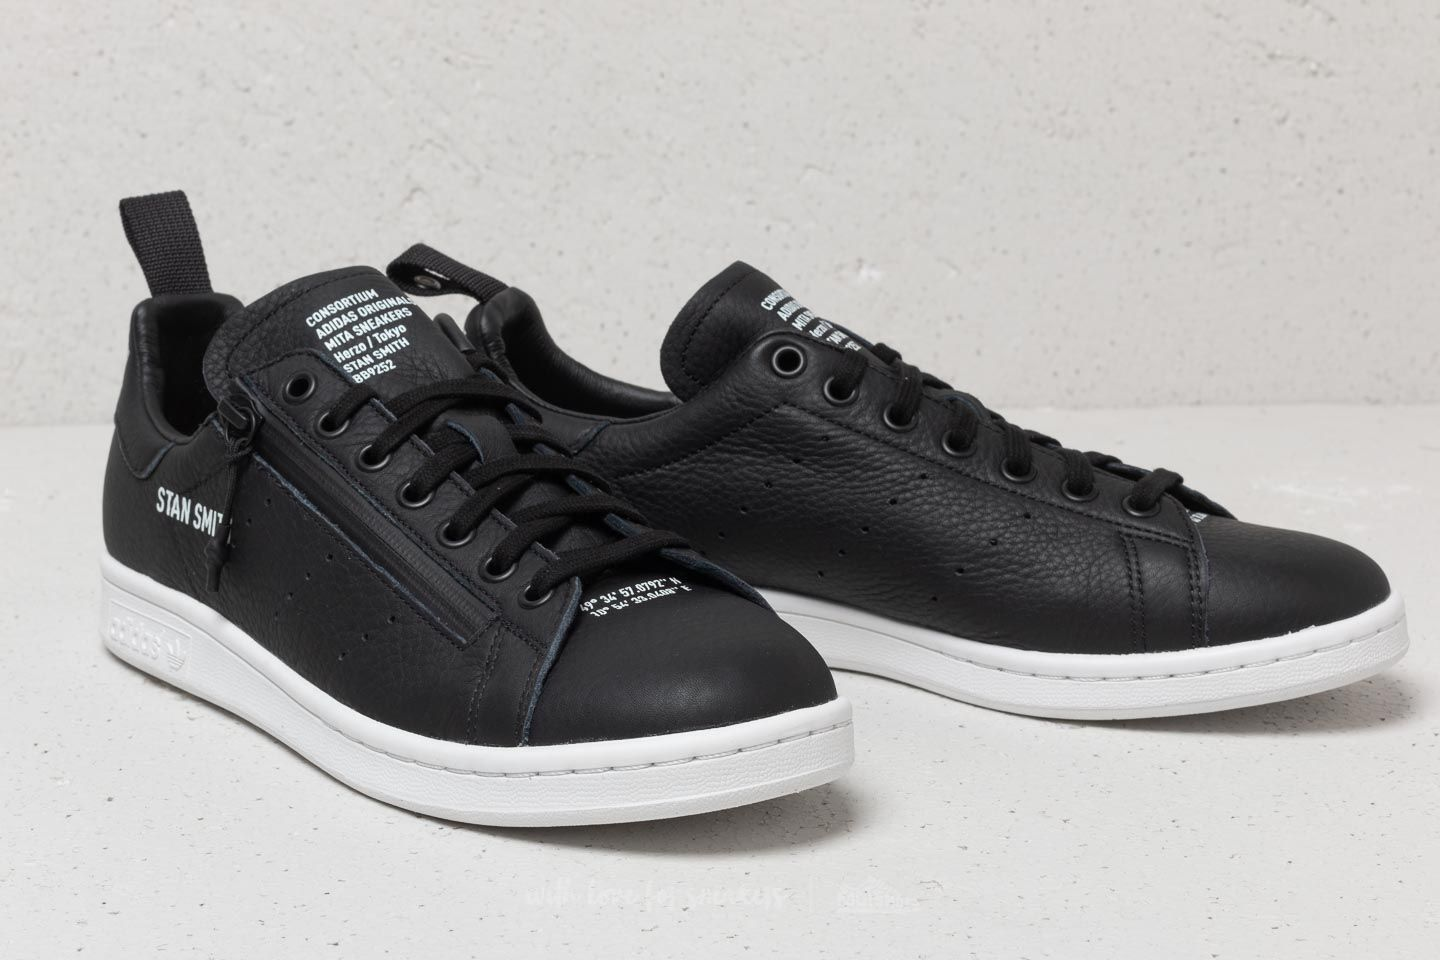 premium selection e9331 62601 adidas Consortium X Mita Stan Smith Black/ Black/ White ...